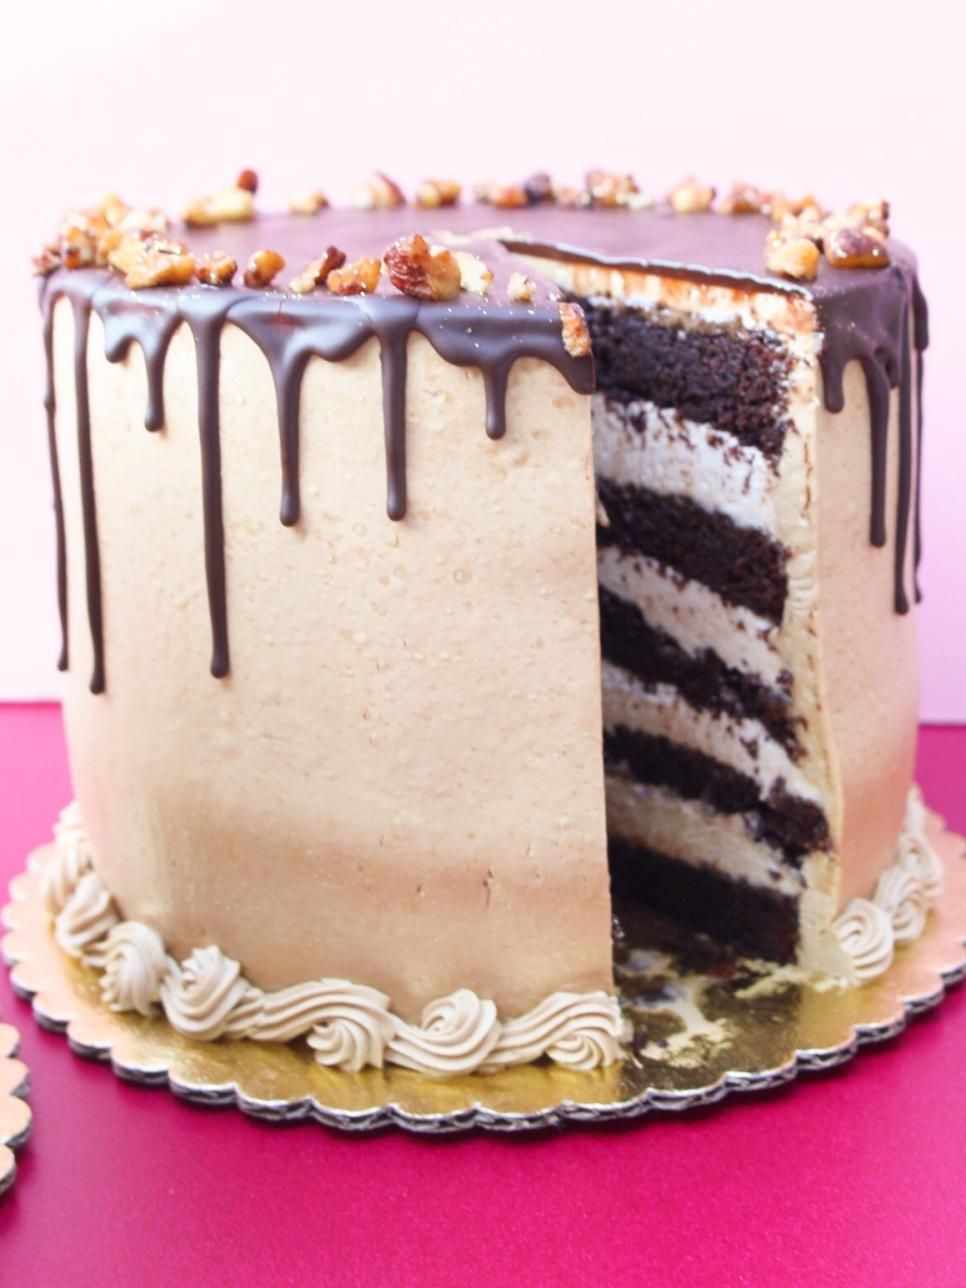 Tall, Dark & Handsome. Boasts multiple layers of chocolate